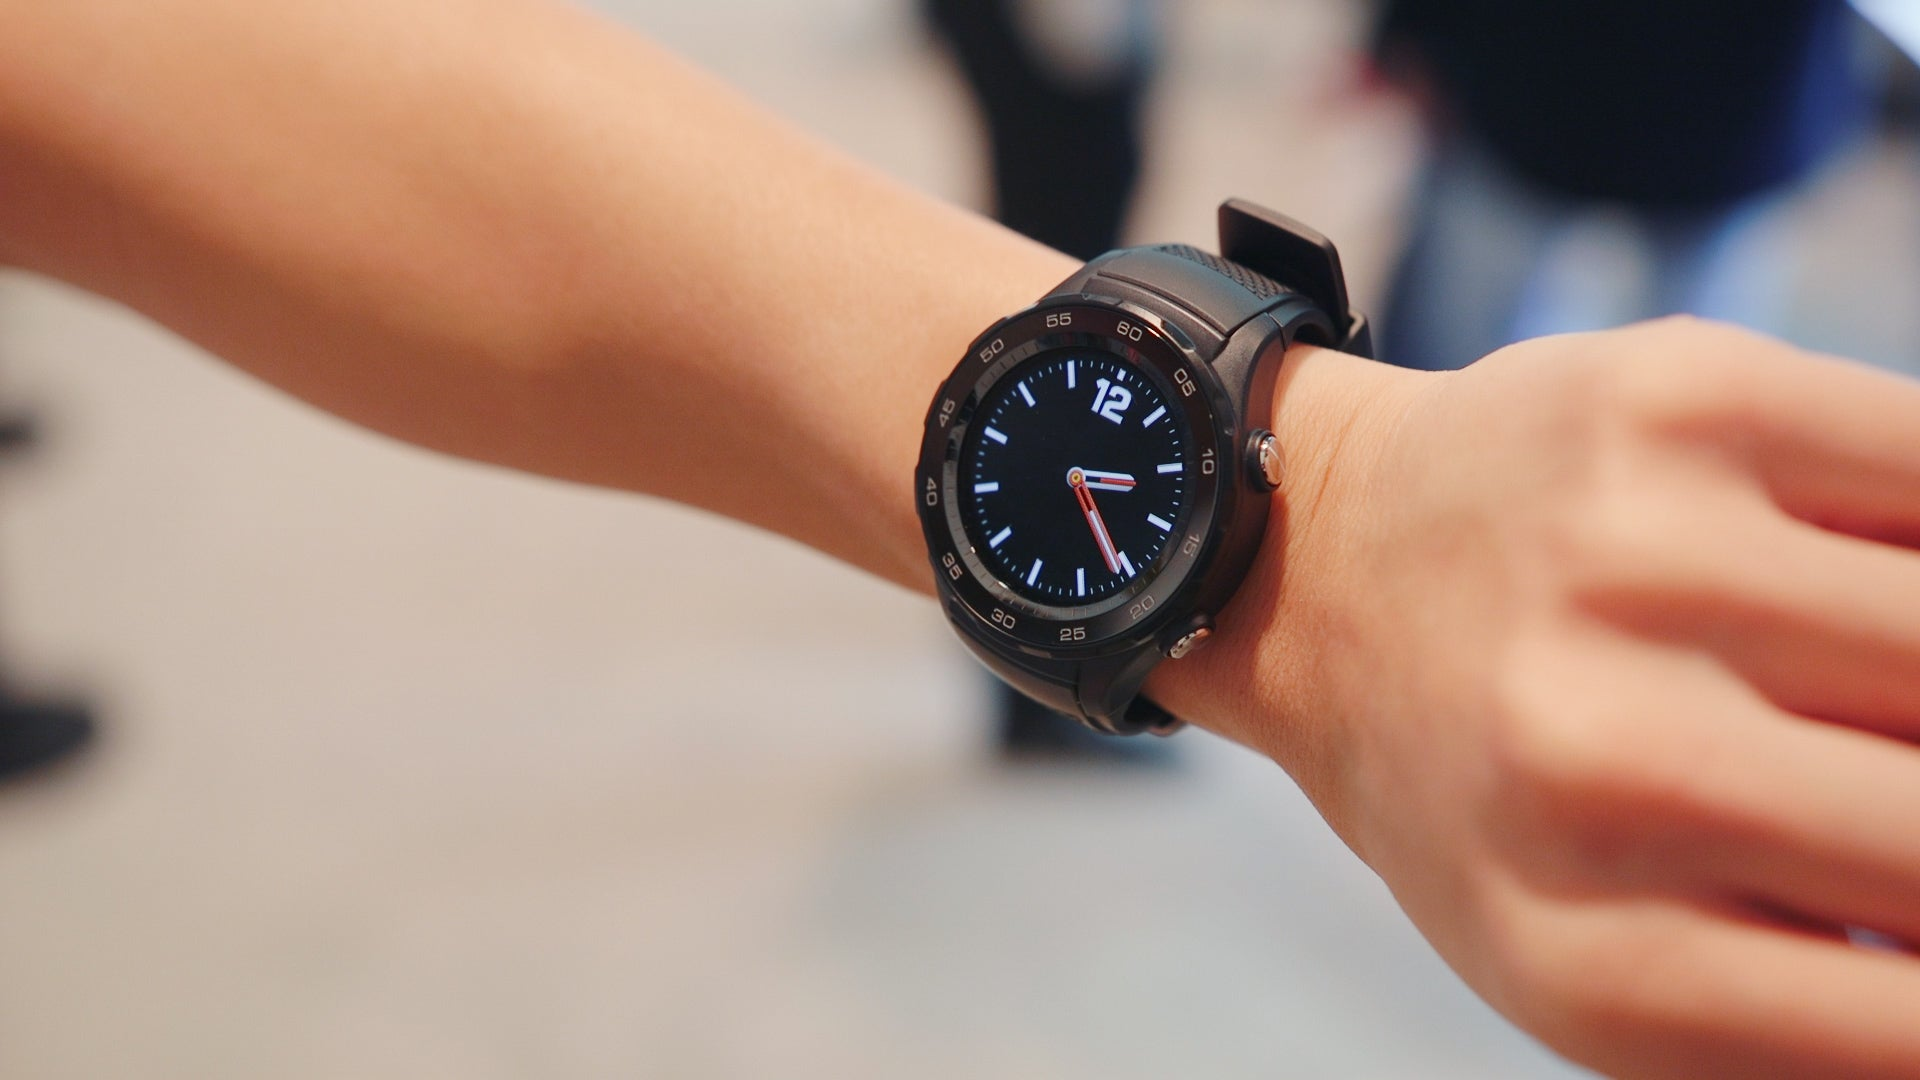 huawei smartwatch on wrist. huawei smartwatch on wrist